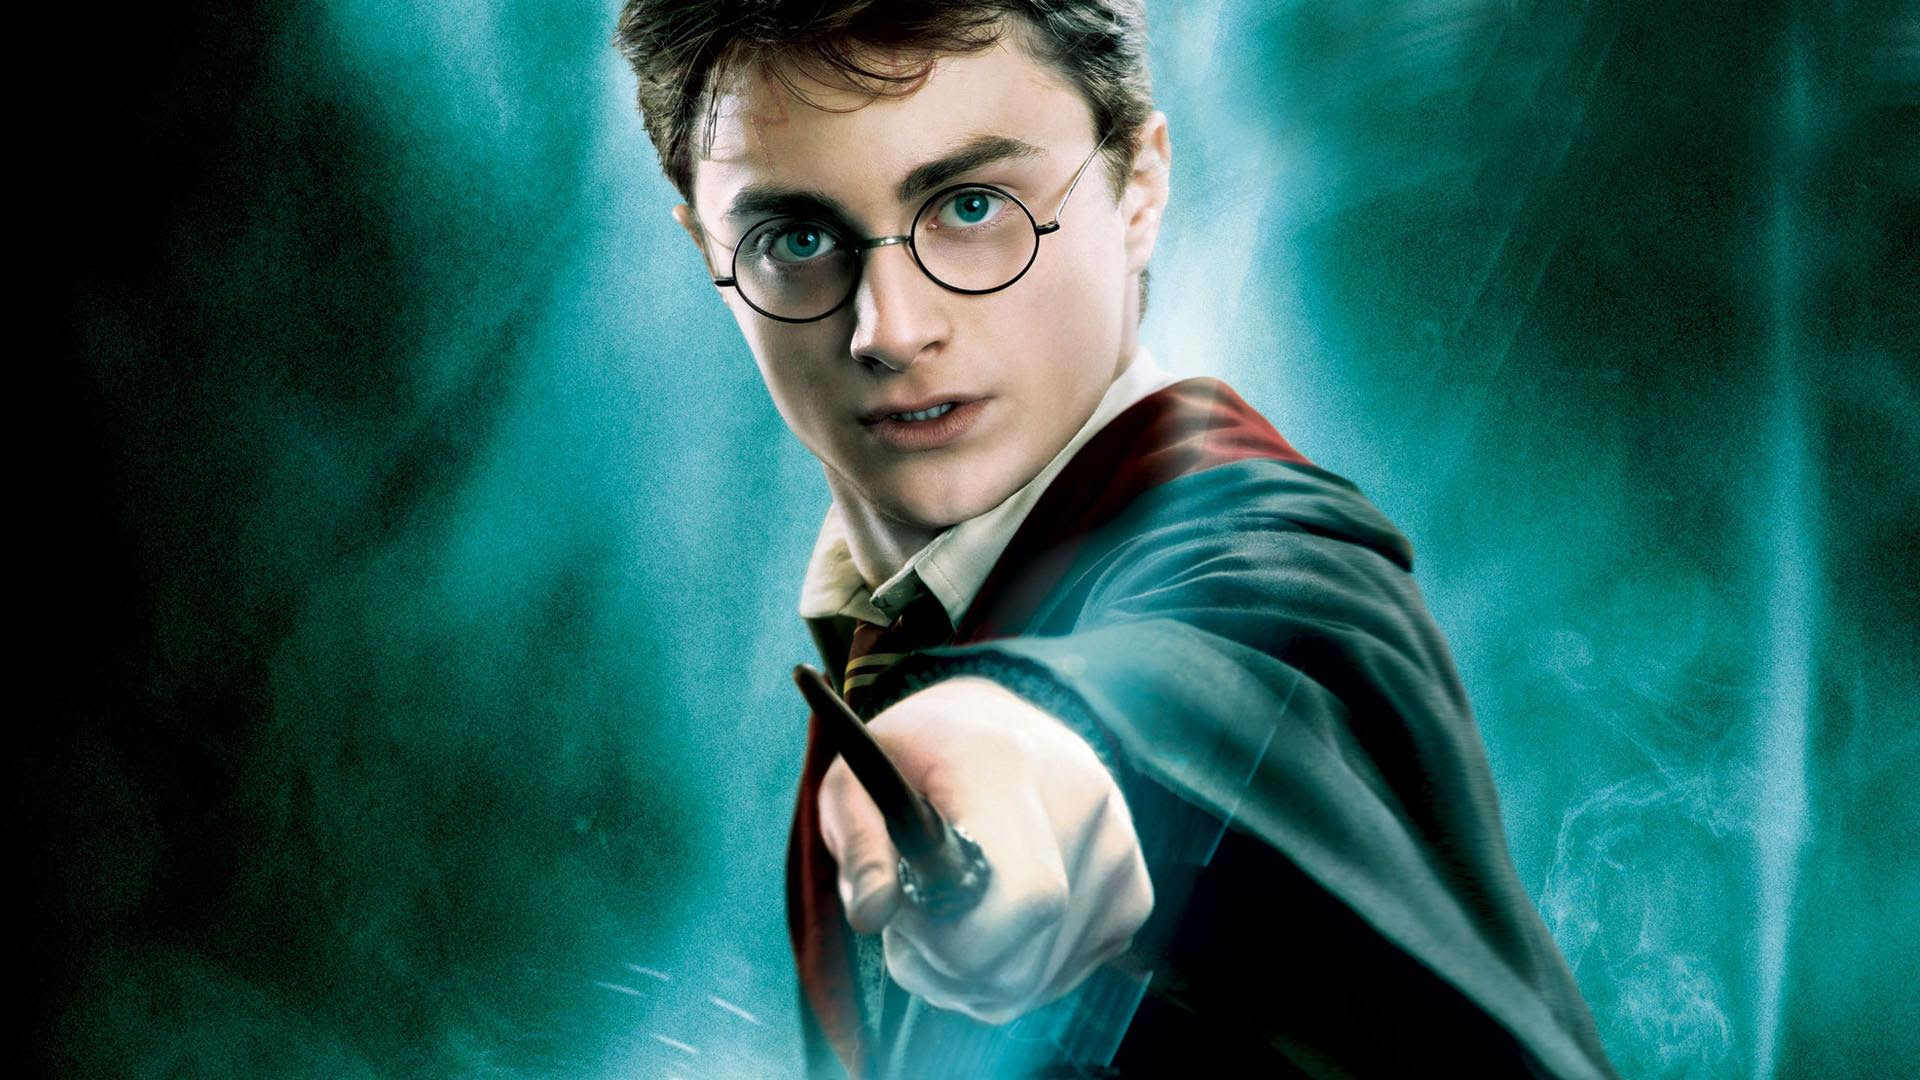 Full Movie Harry Potter and the Deathly Hallows: Part 1 Online Streaming